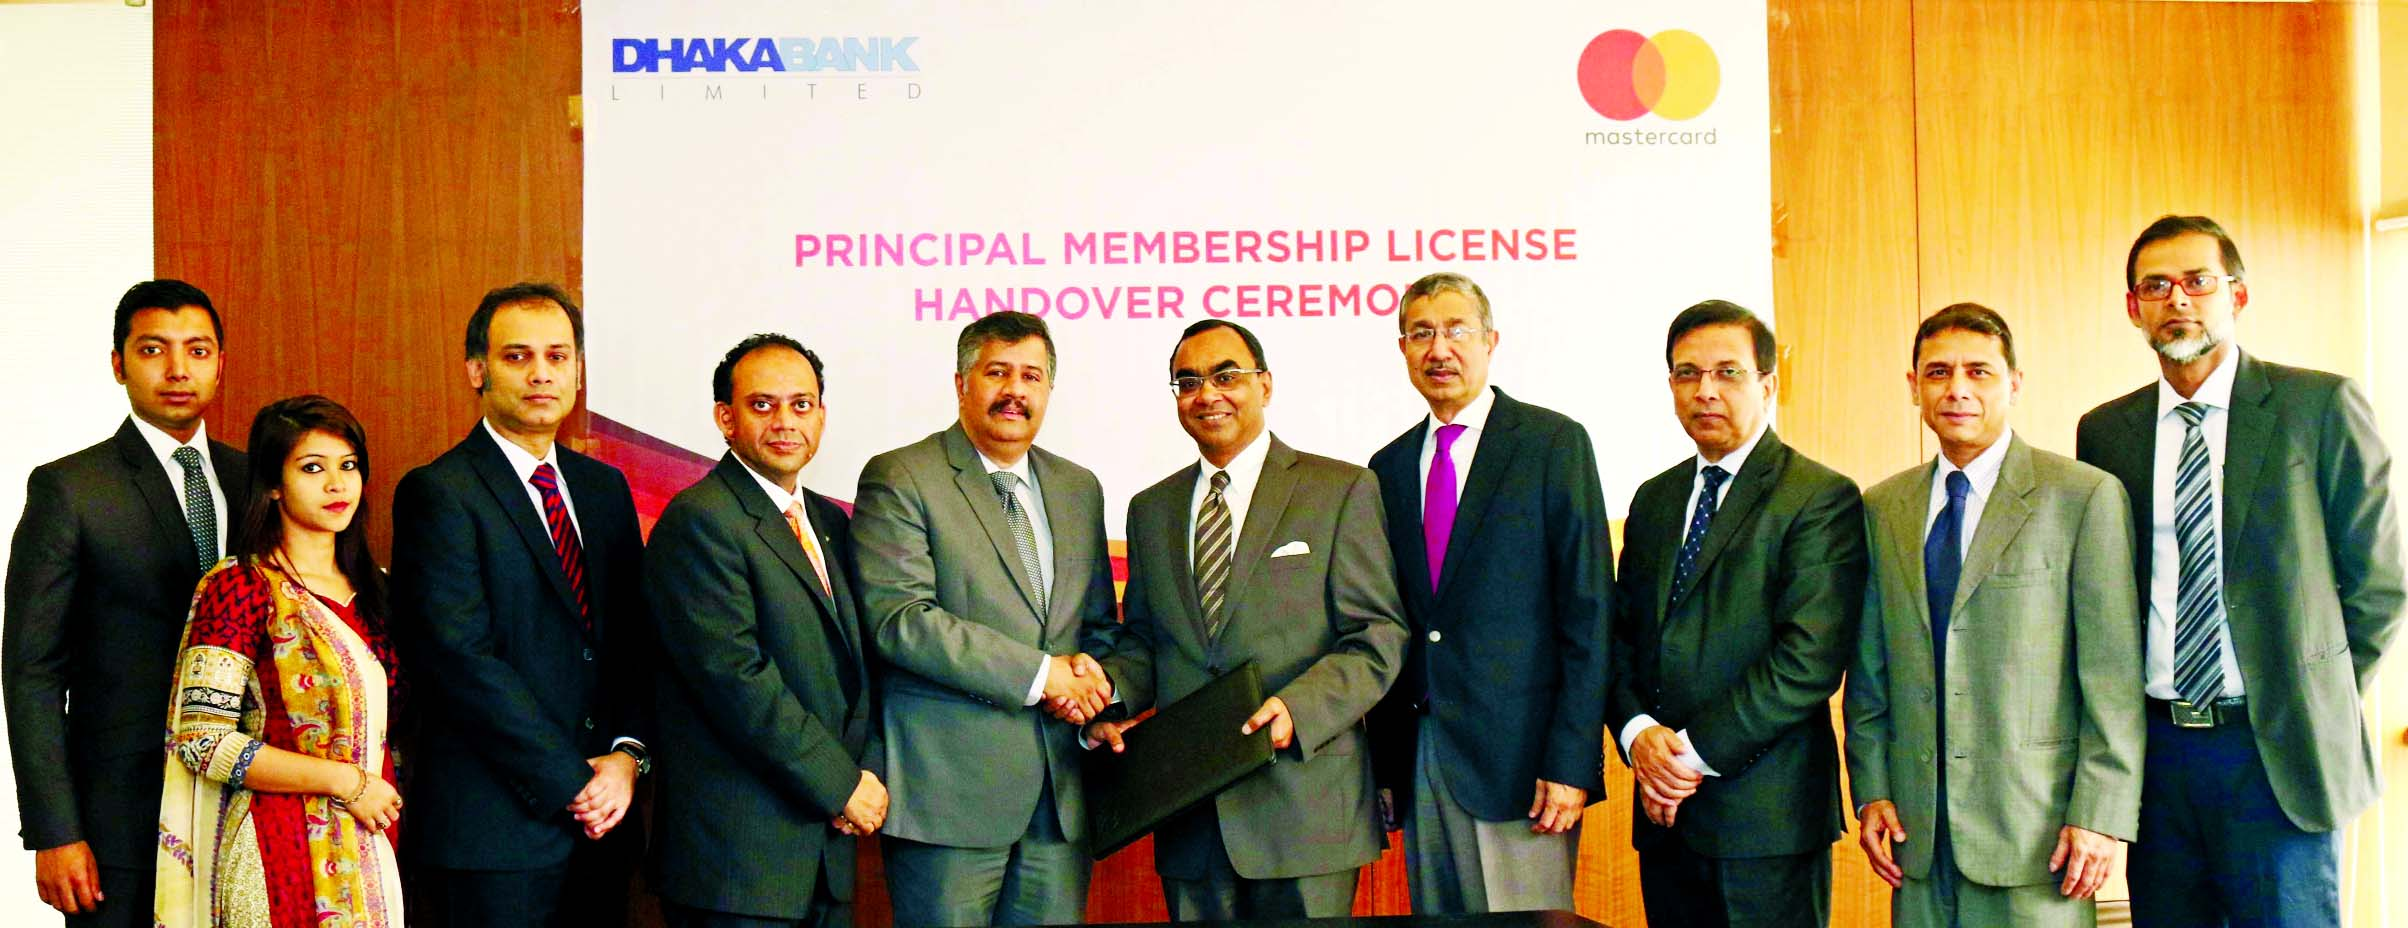 Syed Mahbubur Rahman, Managing Director of Dhaka Bank Limited and Syed Mohammad Kamal, Country Manager of Mastercard Bangladesh, exchanging documents after signed a deal at the bank head office in the city recently. Emranul Huq, AMD, Shafquat Hossain, Head of Retail Banking of the bank and Gitanka D Datta, Director of Mastercard Bangladesh and other high officials of both the organizations were present.